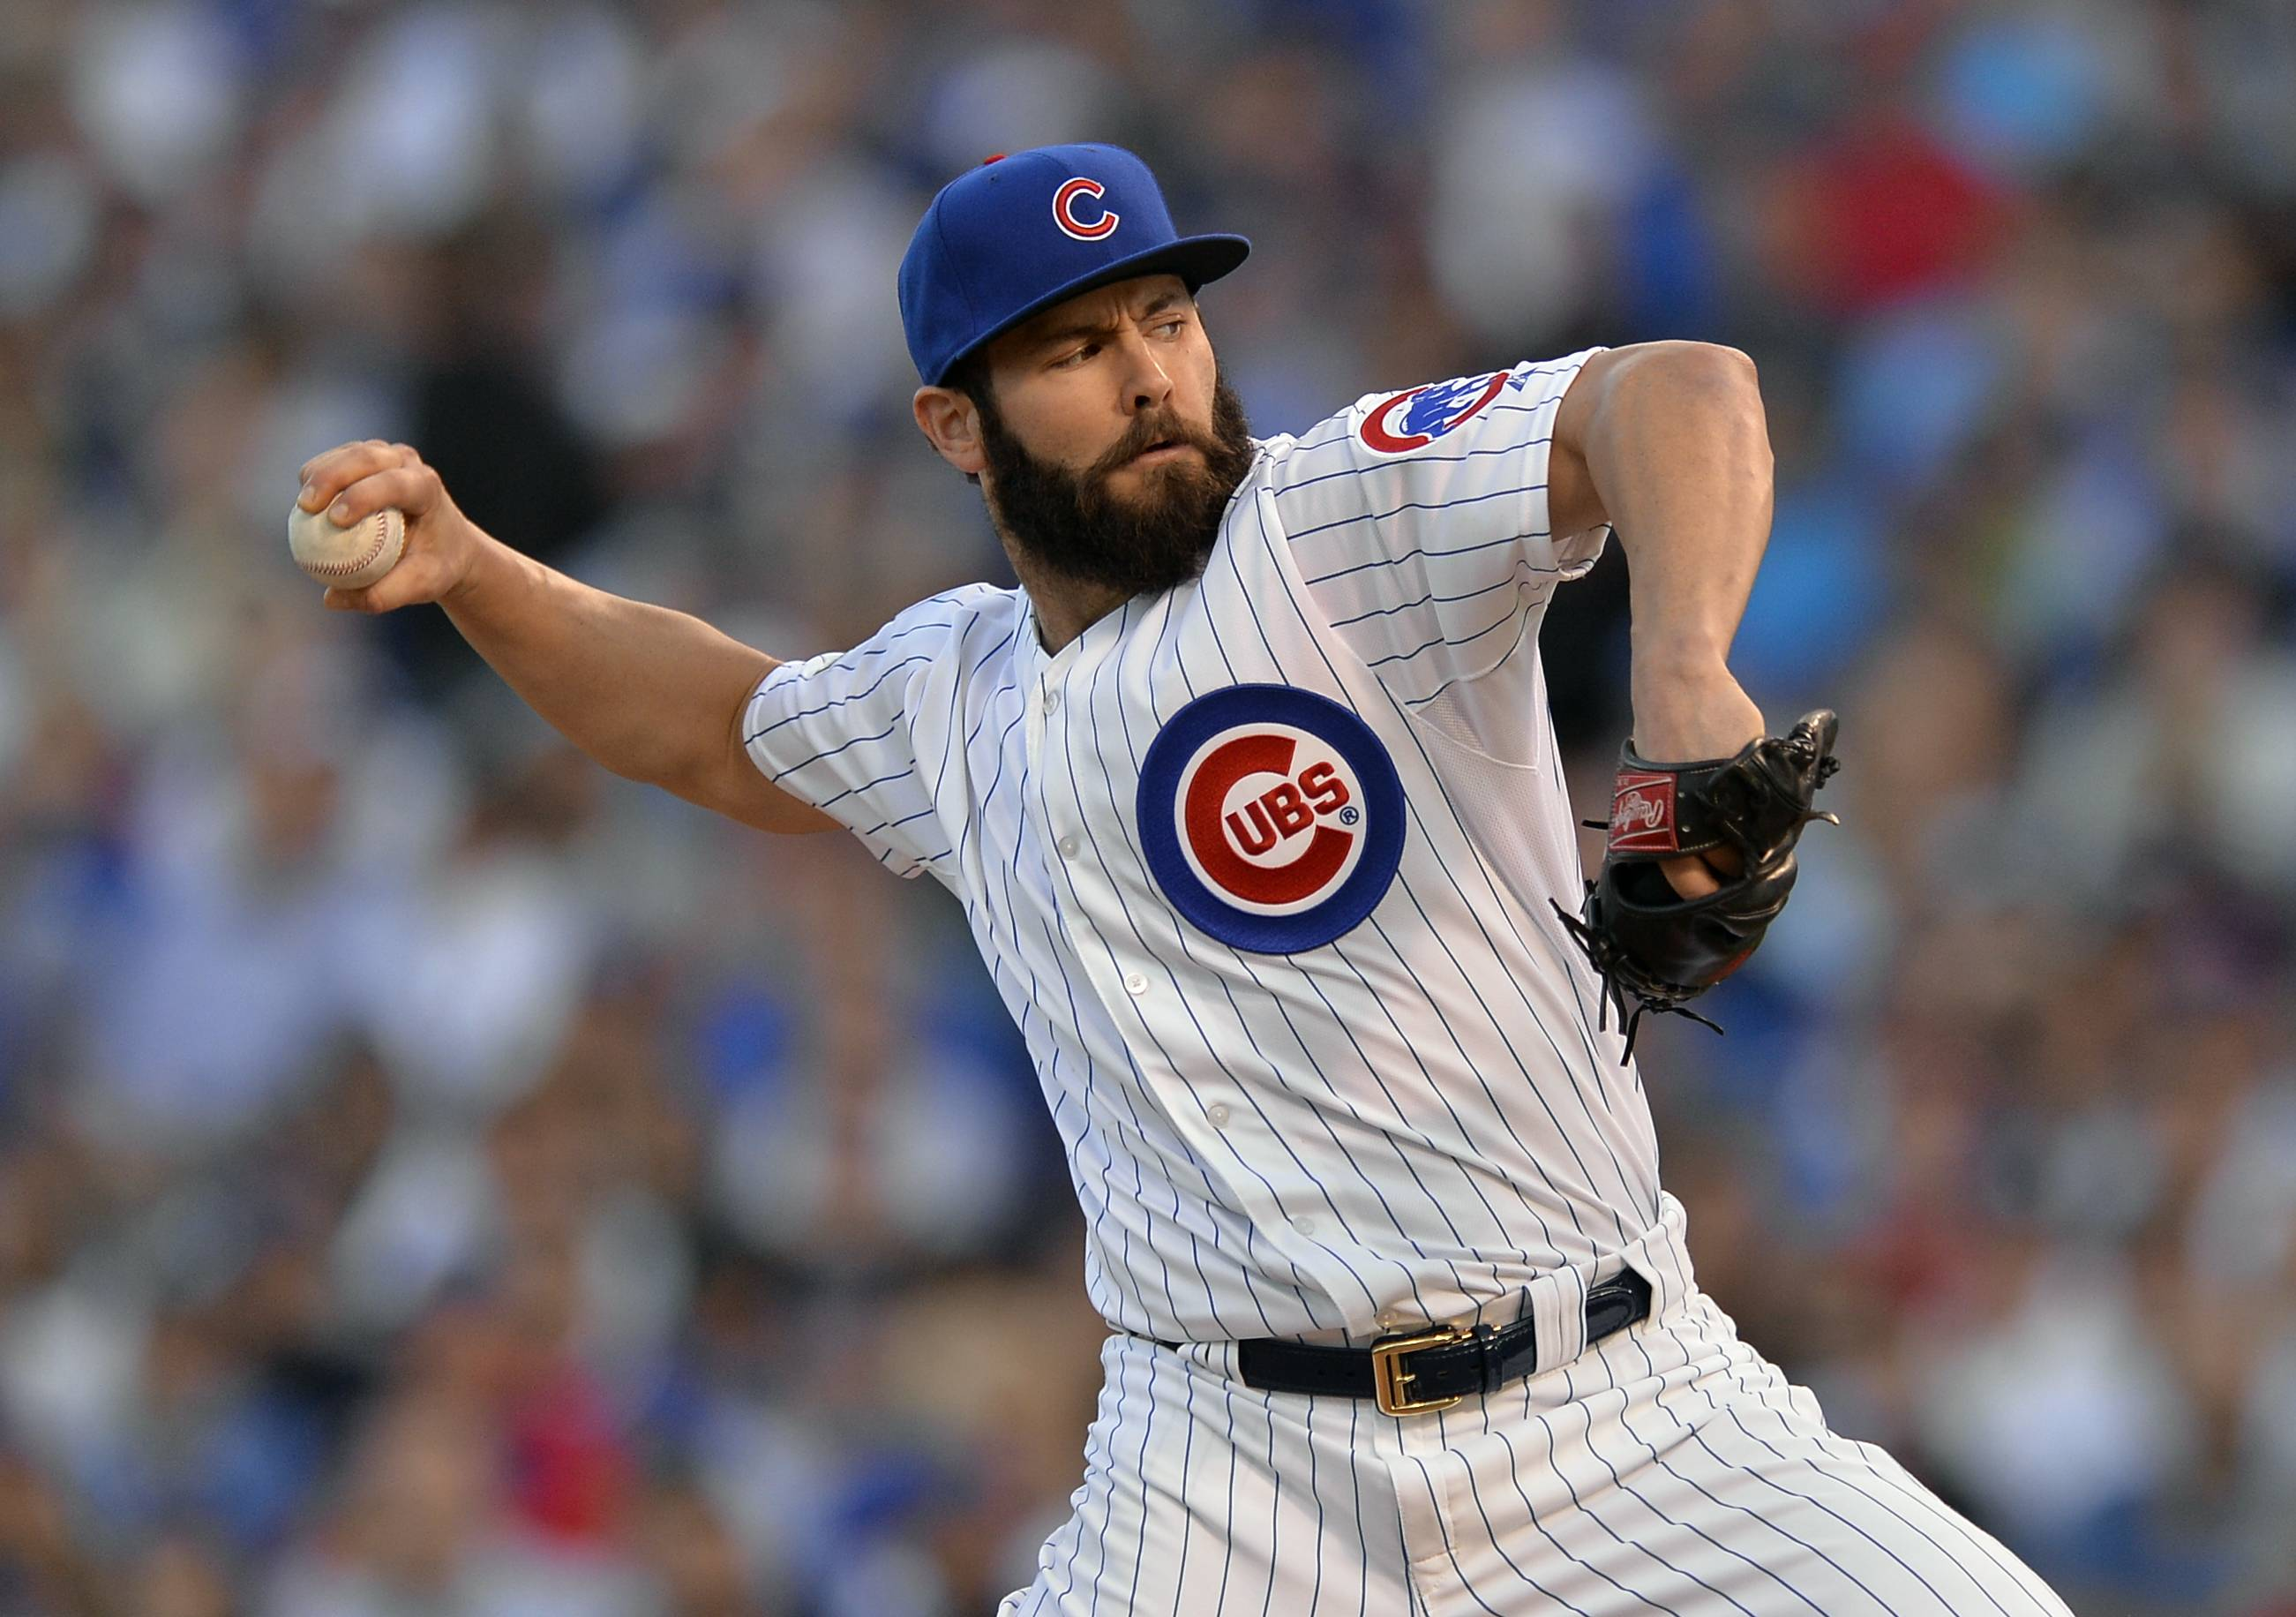 Cubs starting pitcher Jake Arrieta has agreed to a $10.7 million, one-year contract, avoiding arbitration with the highest one-year deal for a pitcher with four years of major league service.